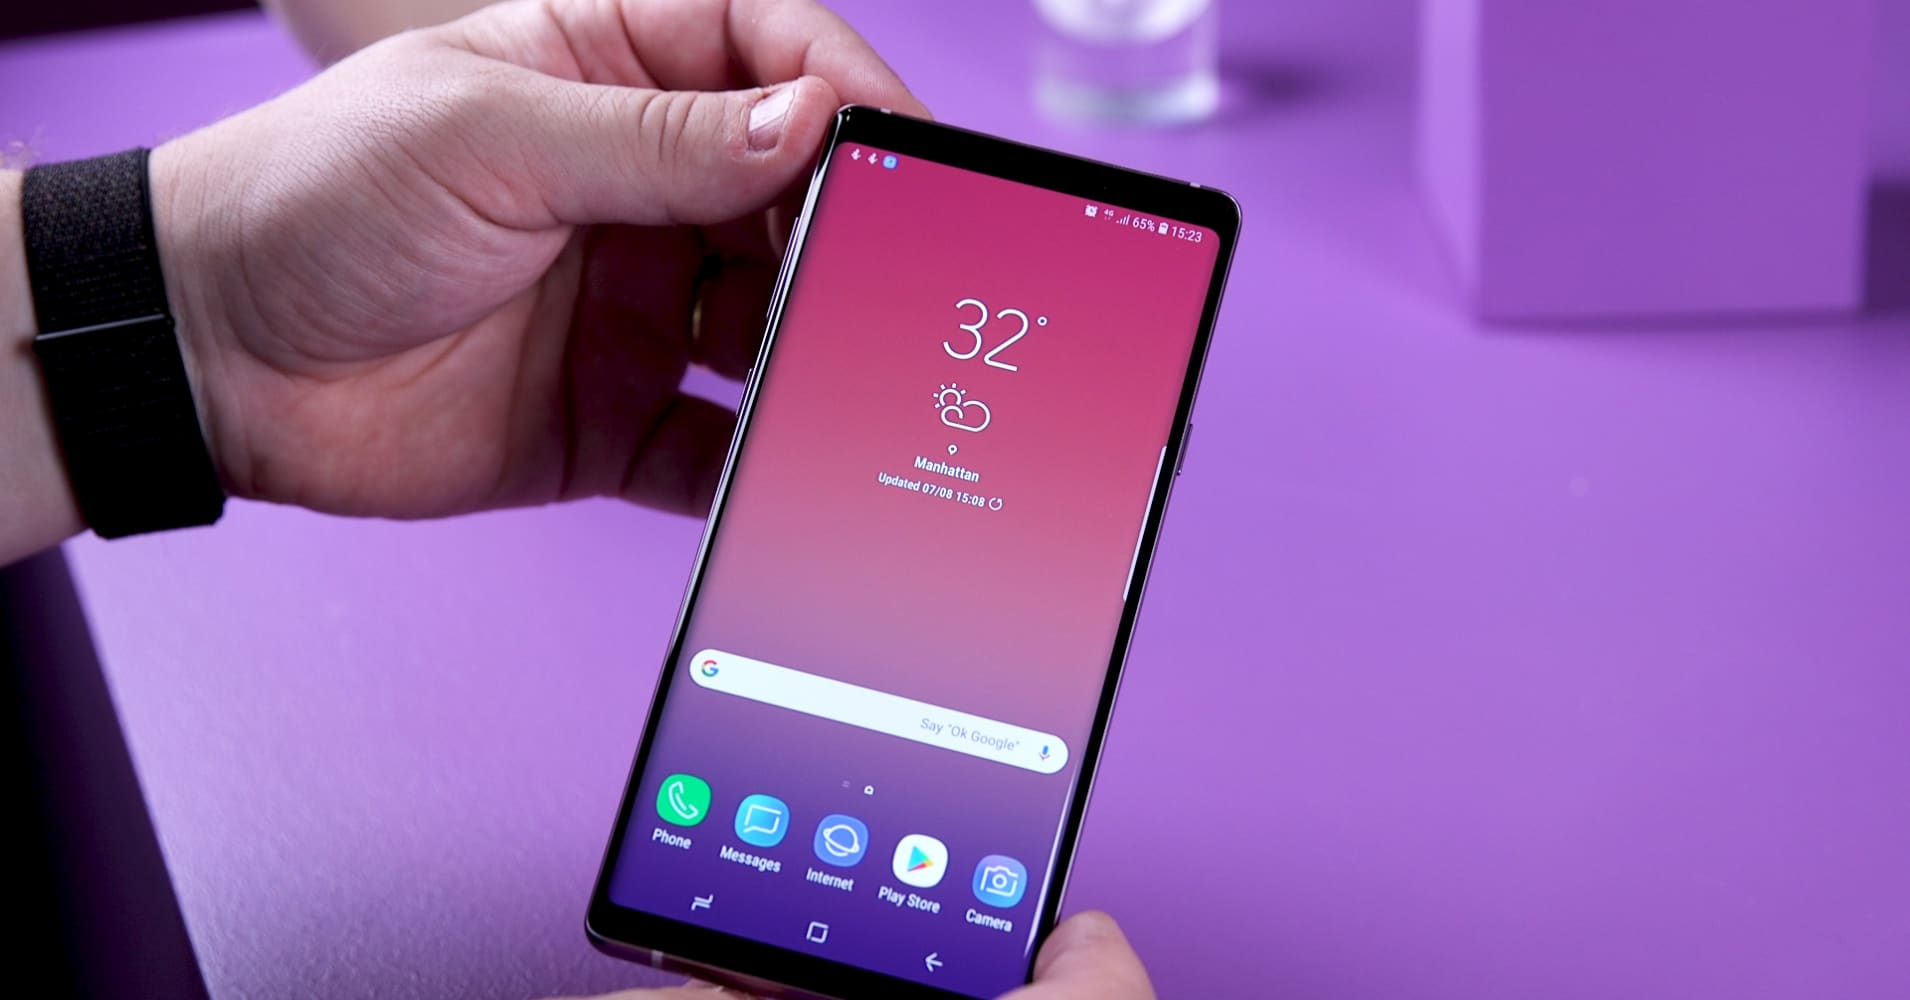 I made the switch from iPhone to Samsung Galaxy Note 9 — this is what I love and what I'll miss